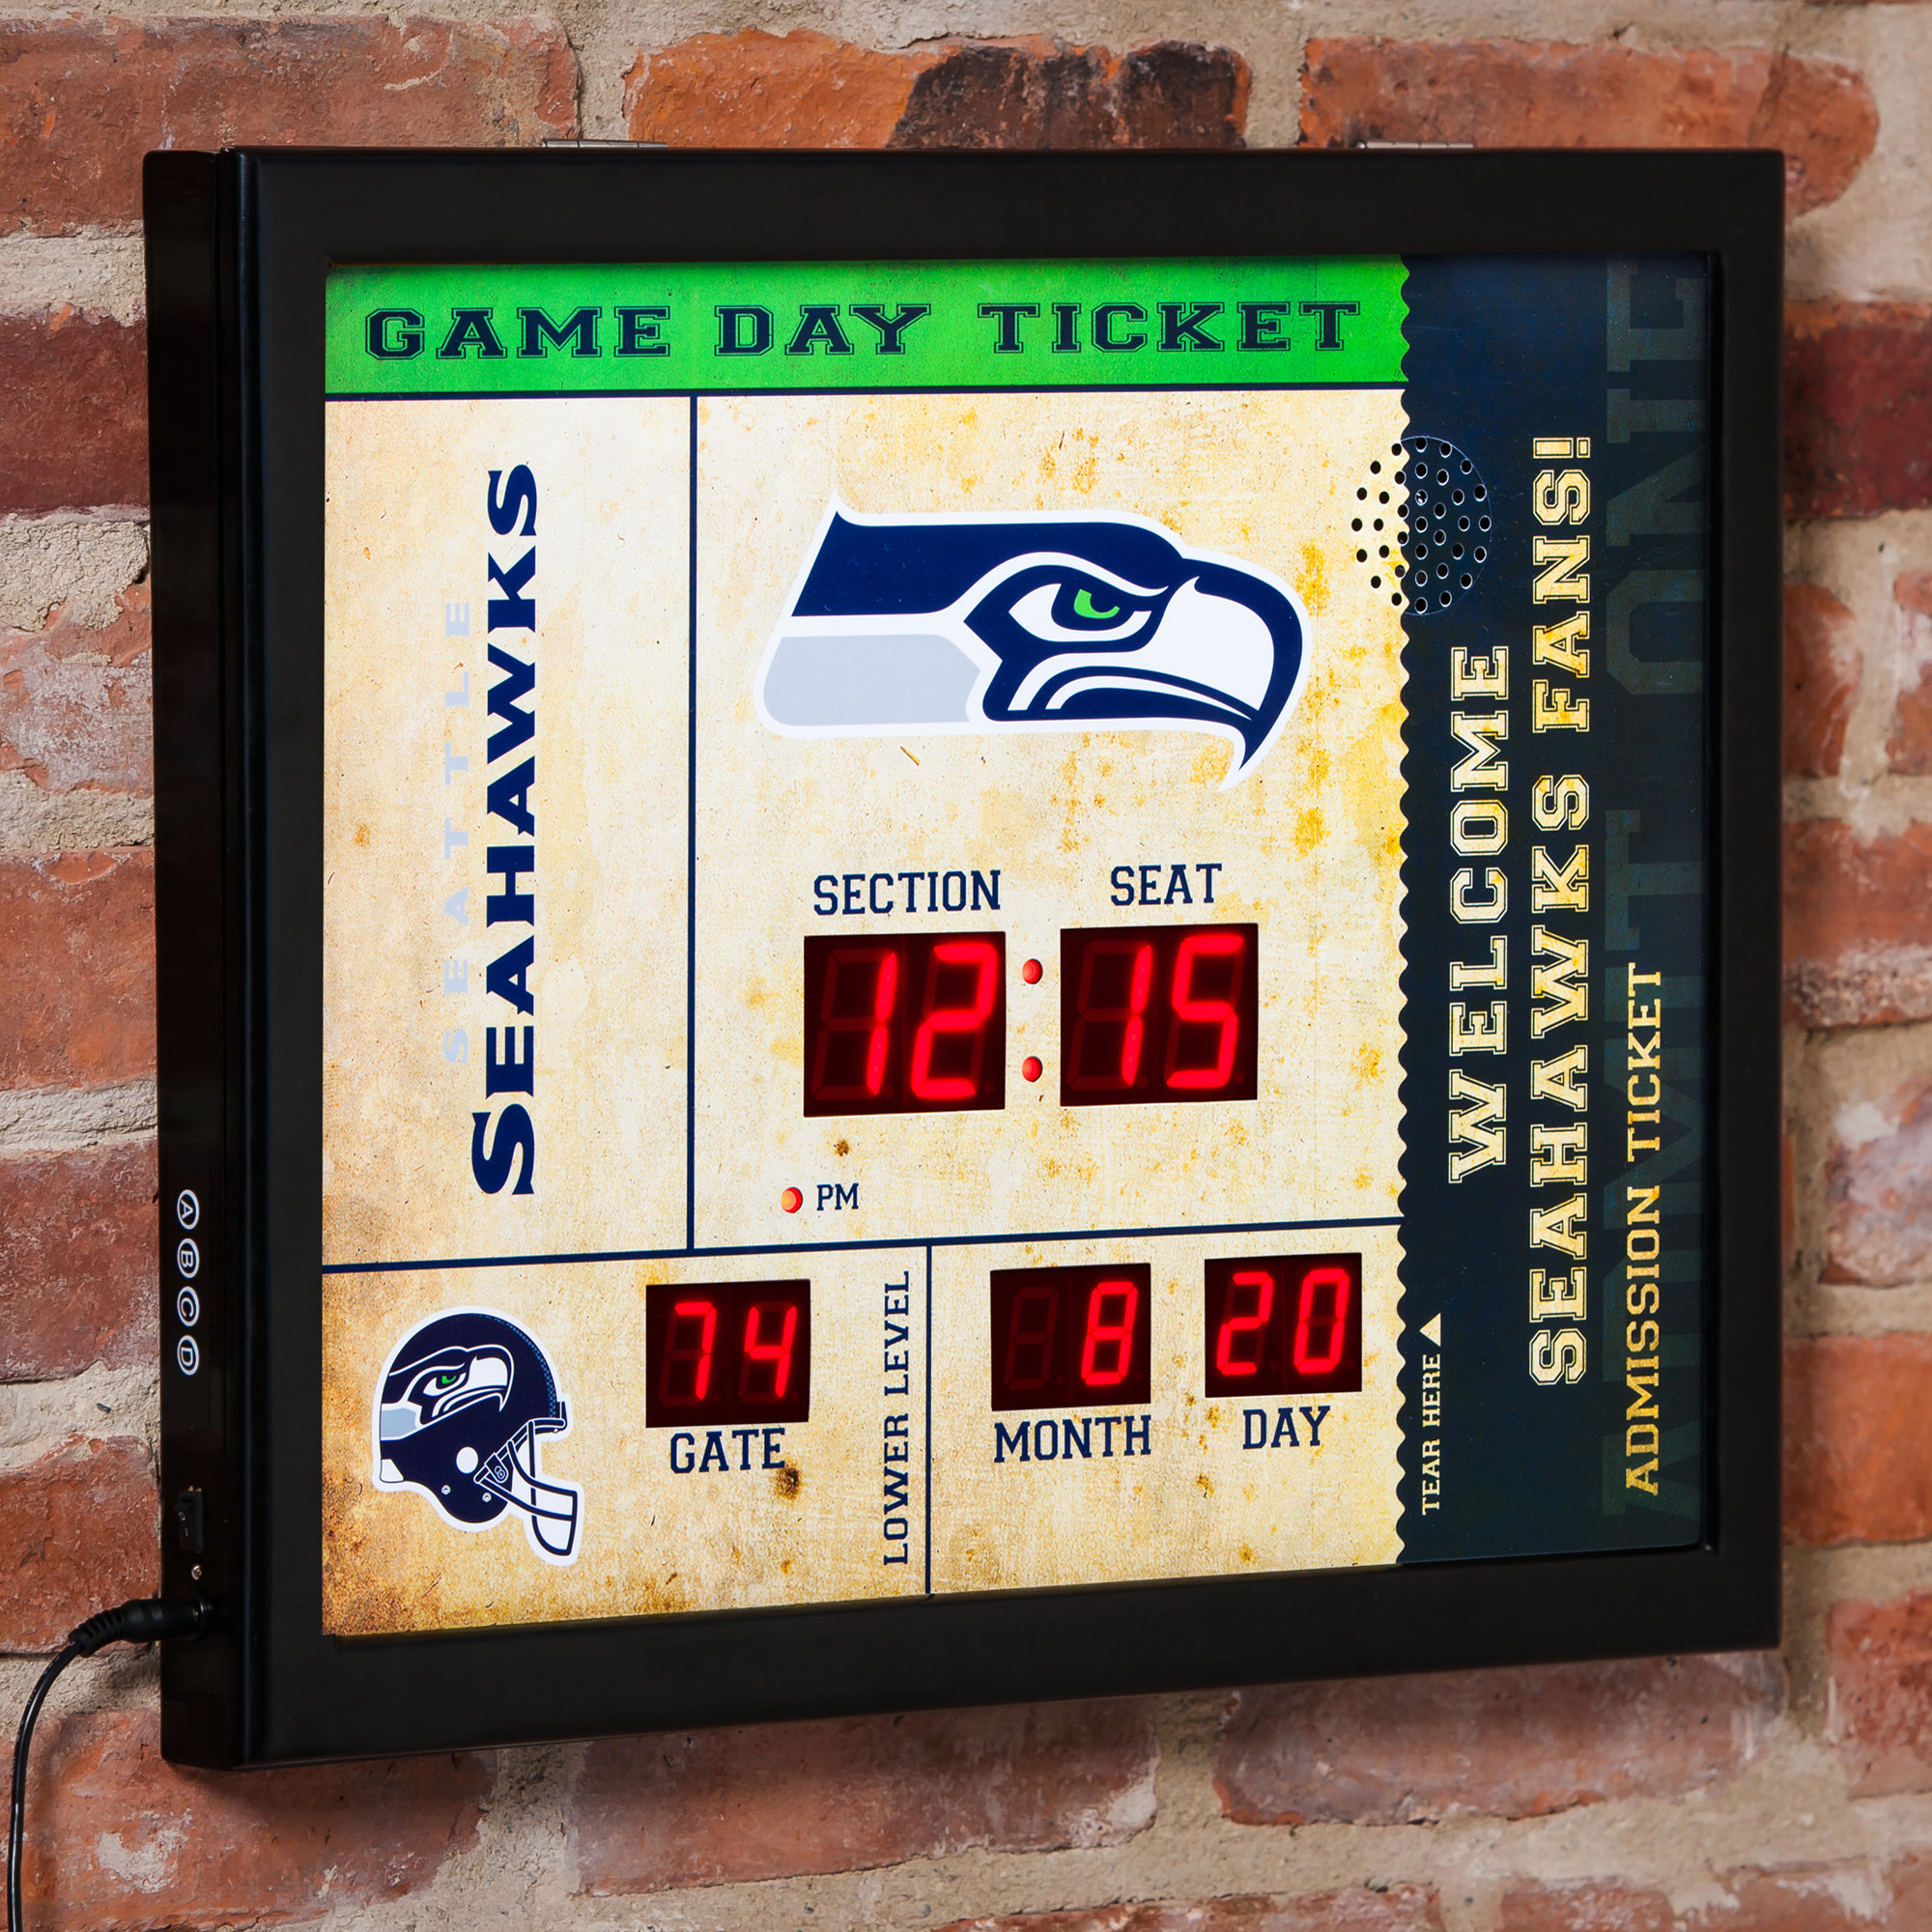 Evergreen Enterprises Bluetooth NFL Scoreboard Wall Clock